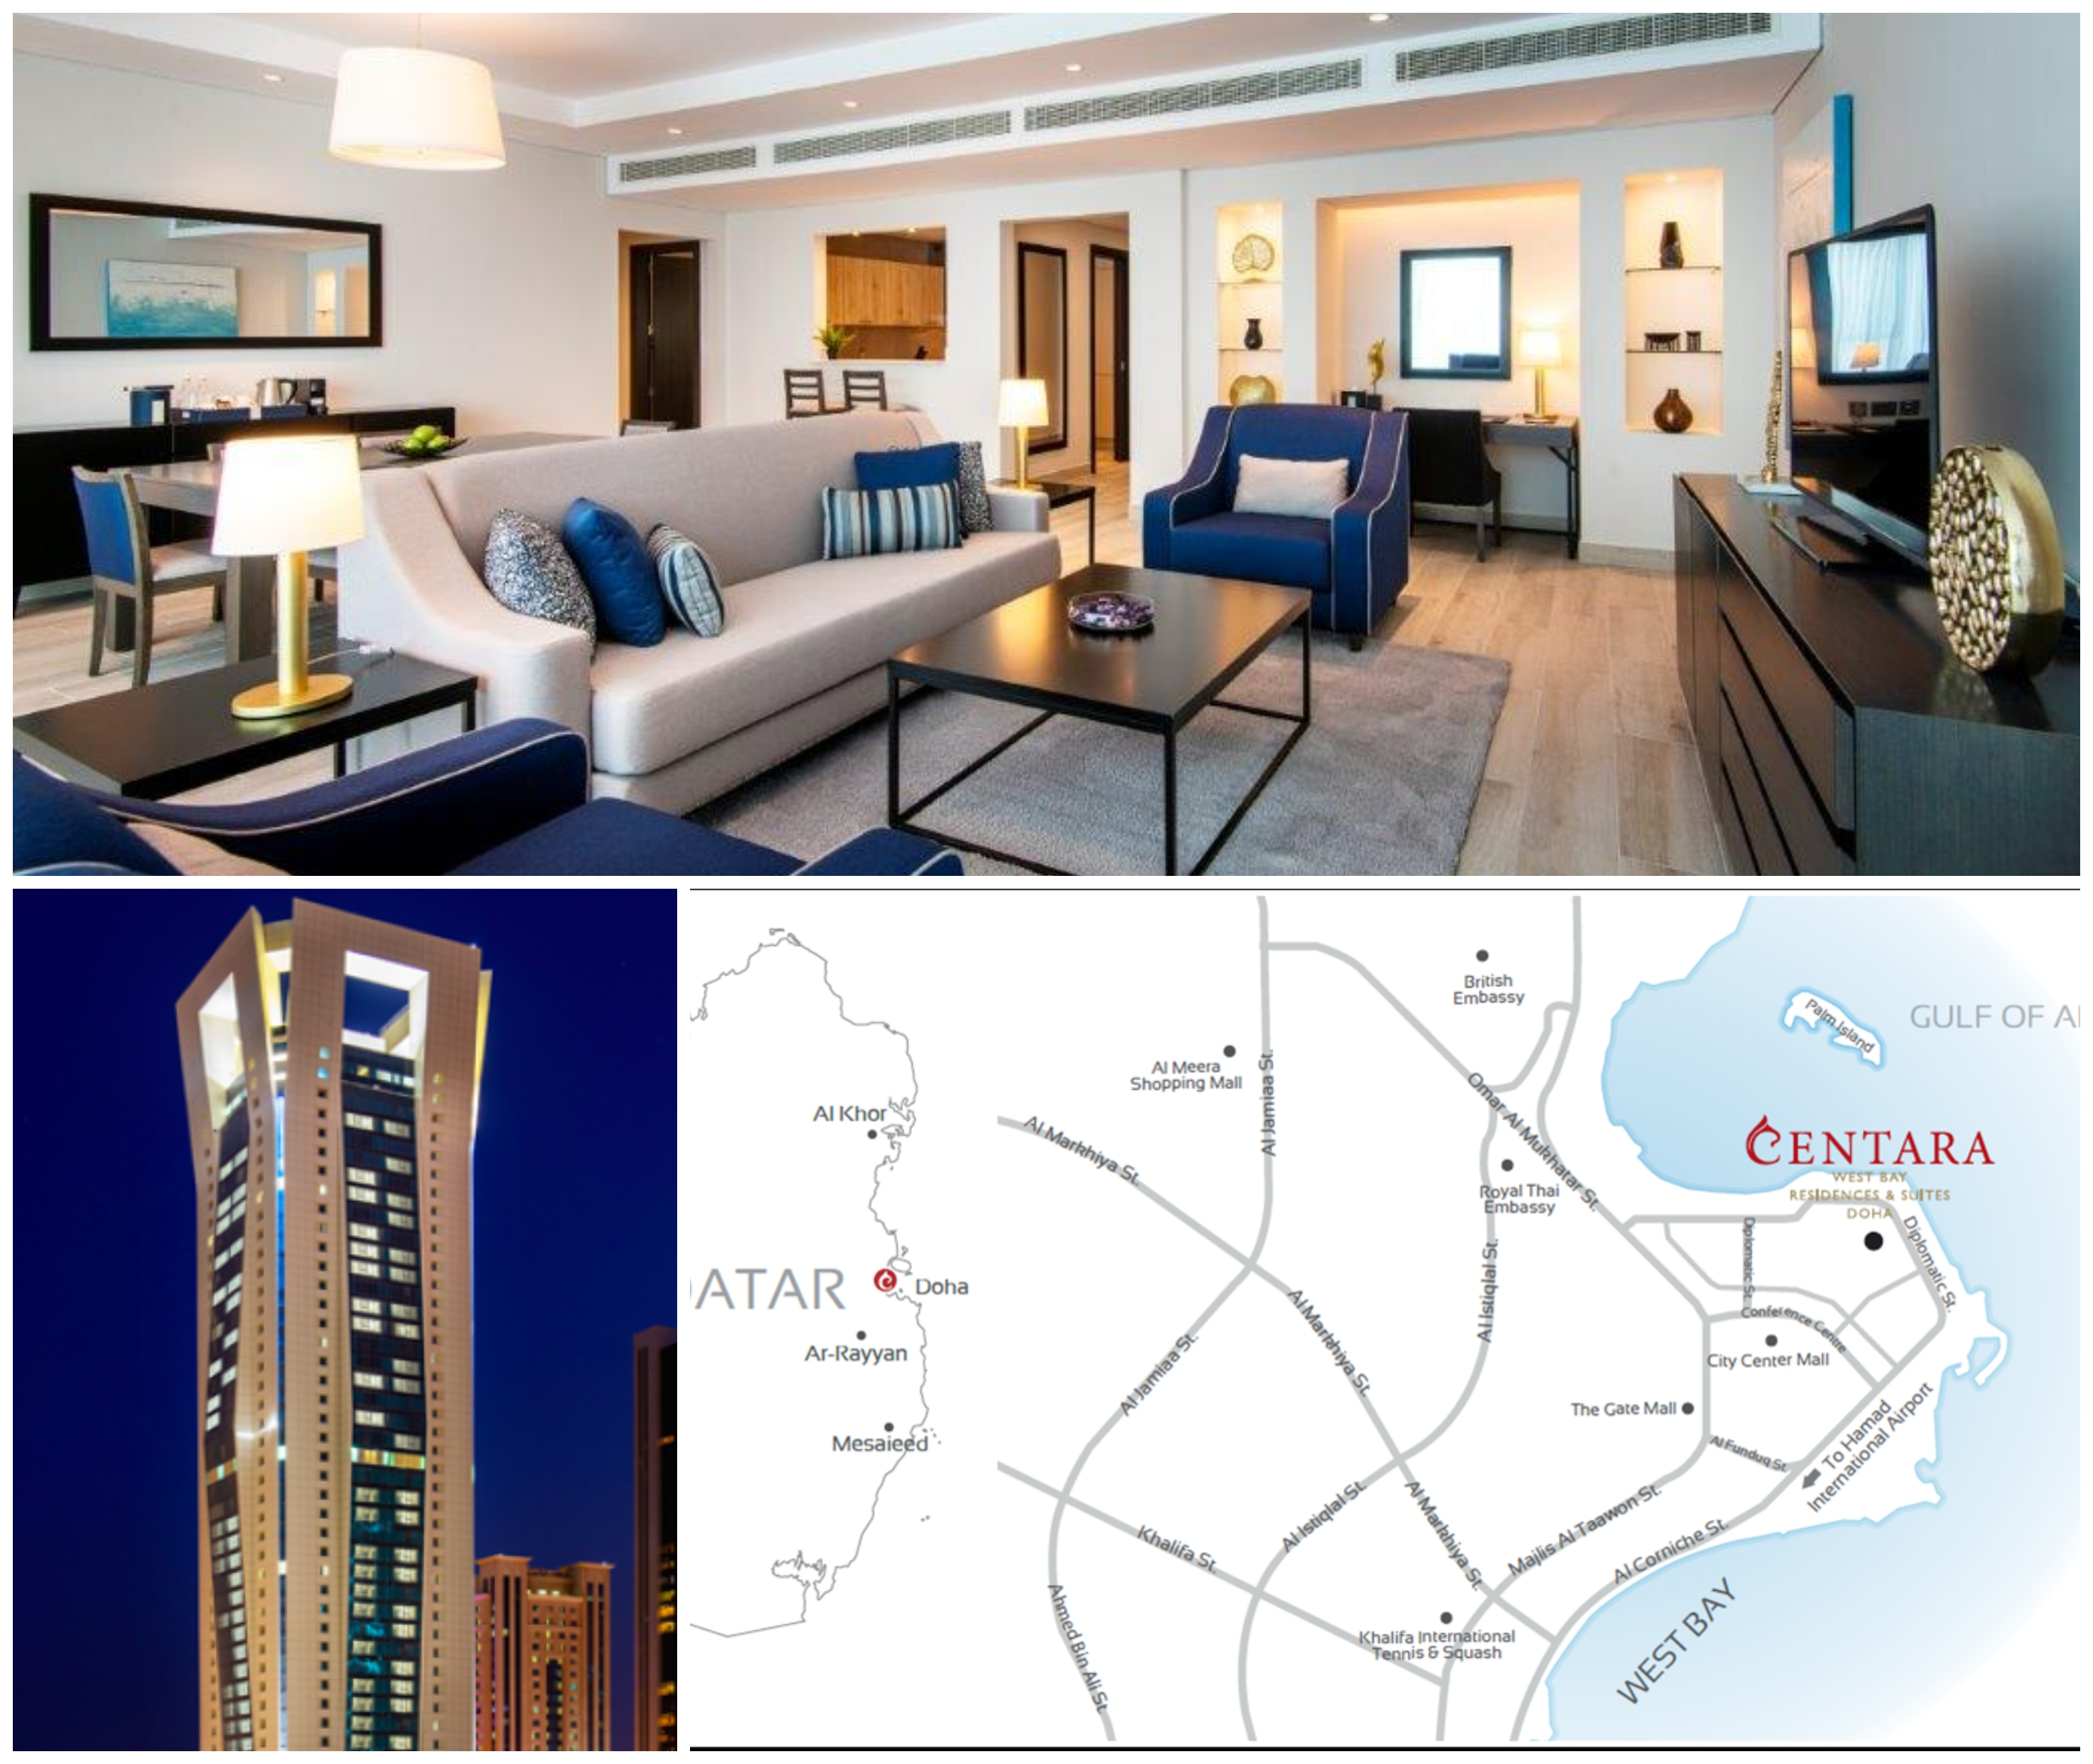 Centara West Bay Residences & Suites